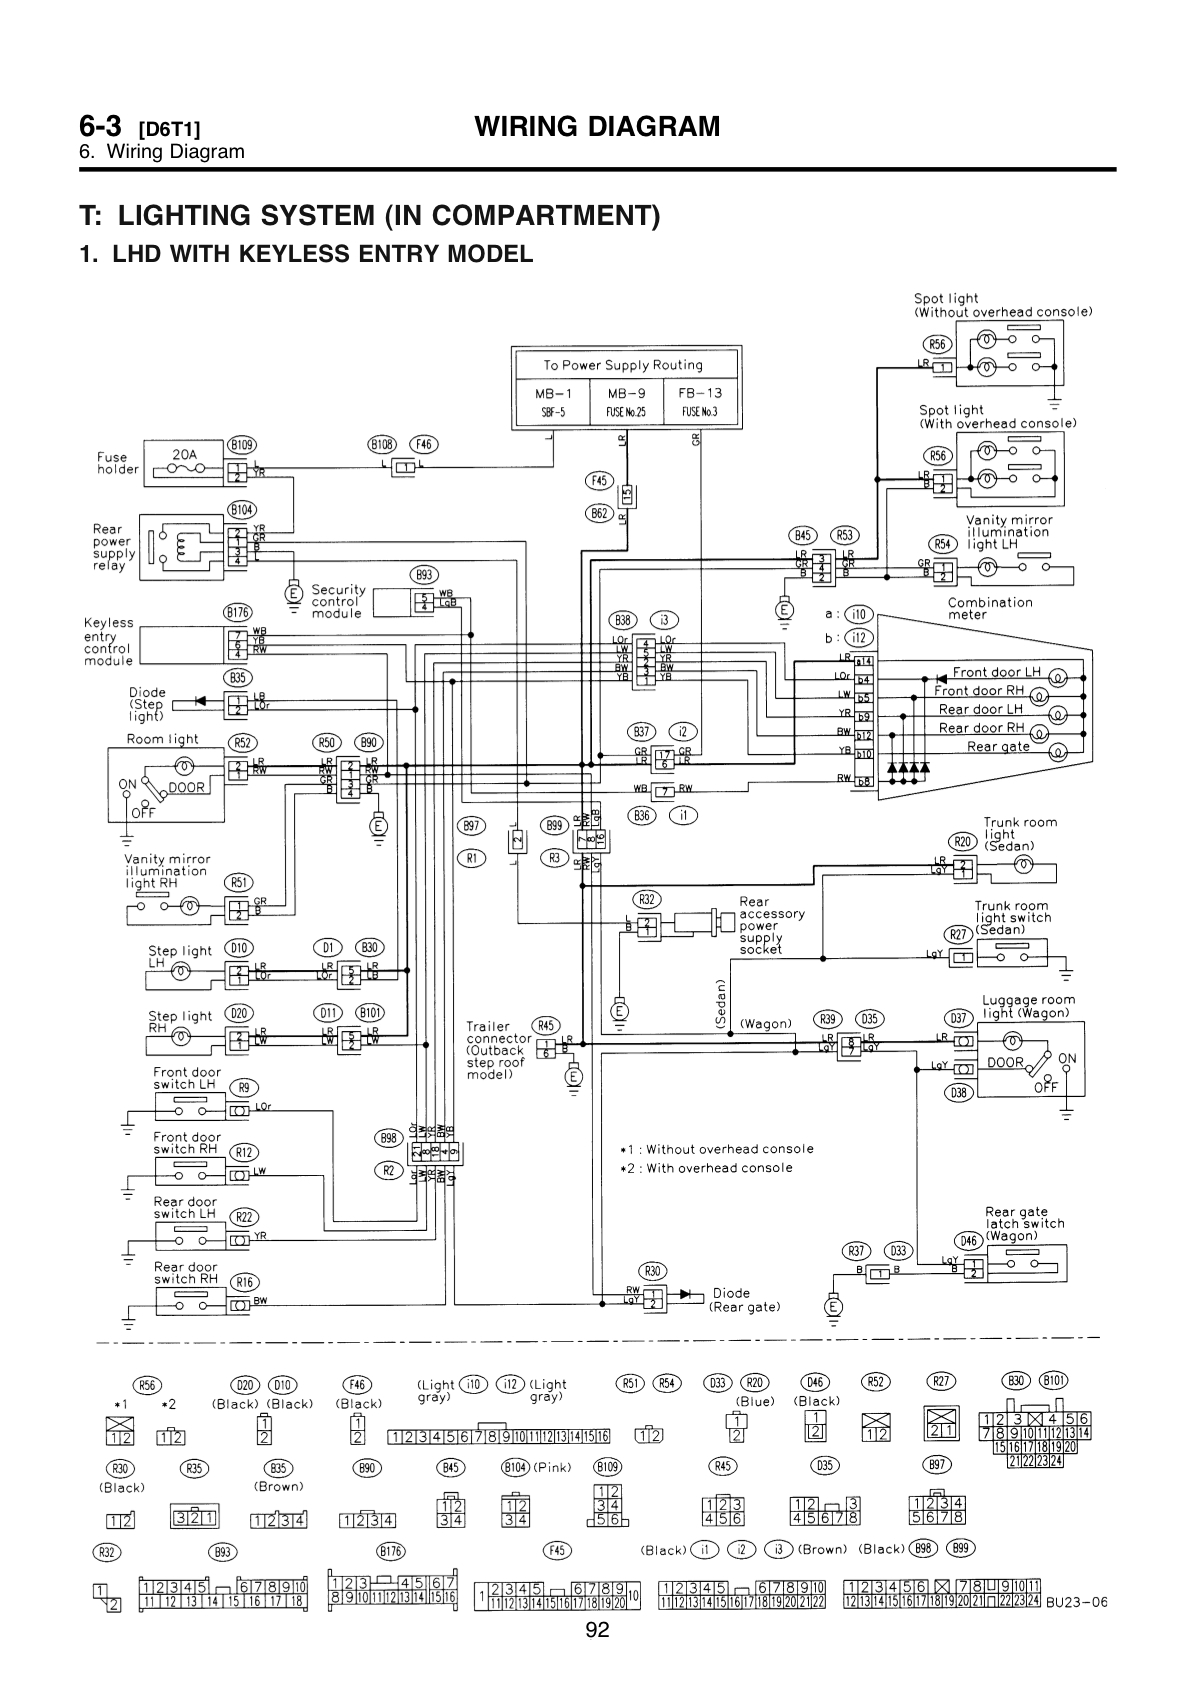 98 subaru alternator wiring repair manual  subaru legacy alternator diagram #12